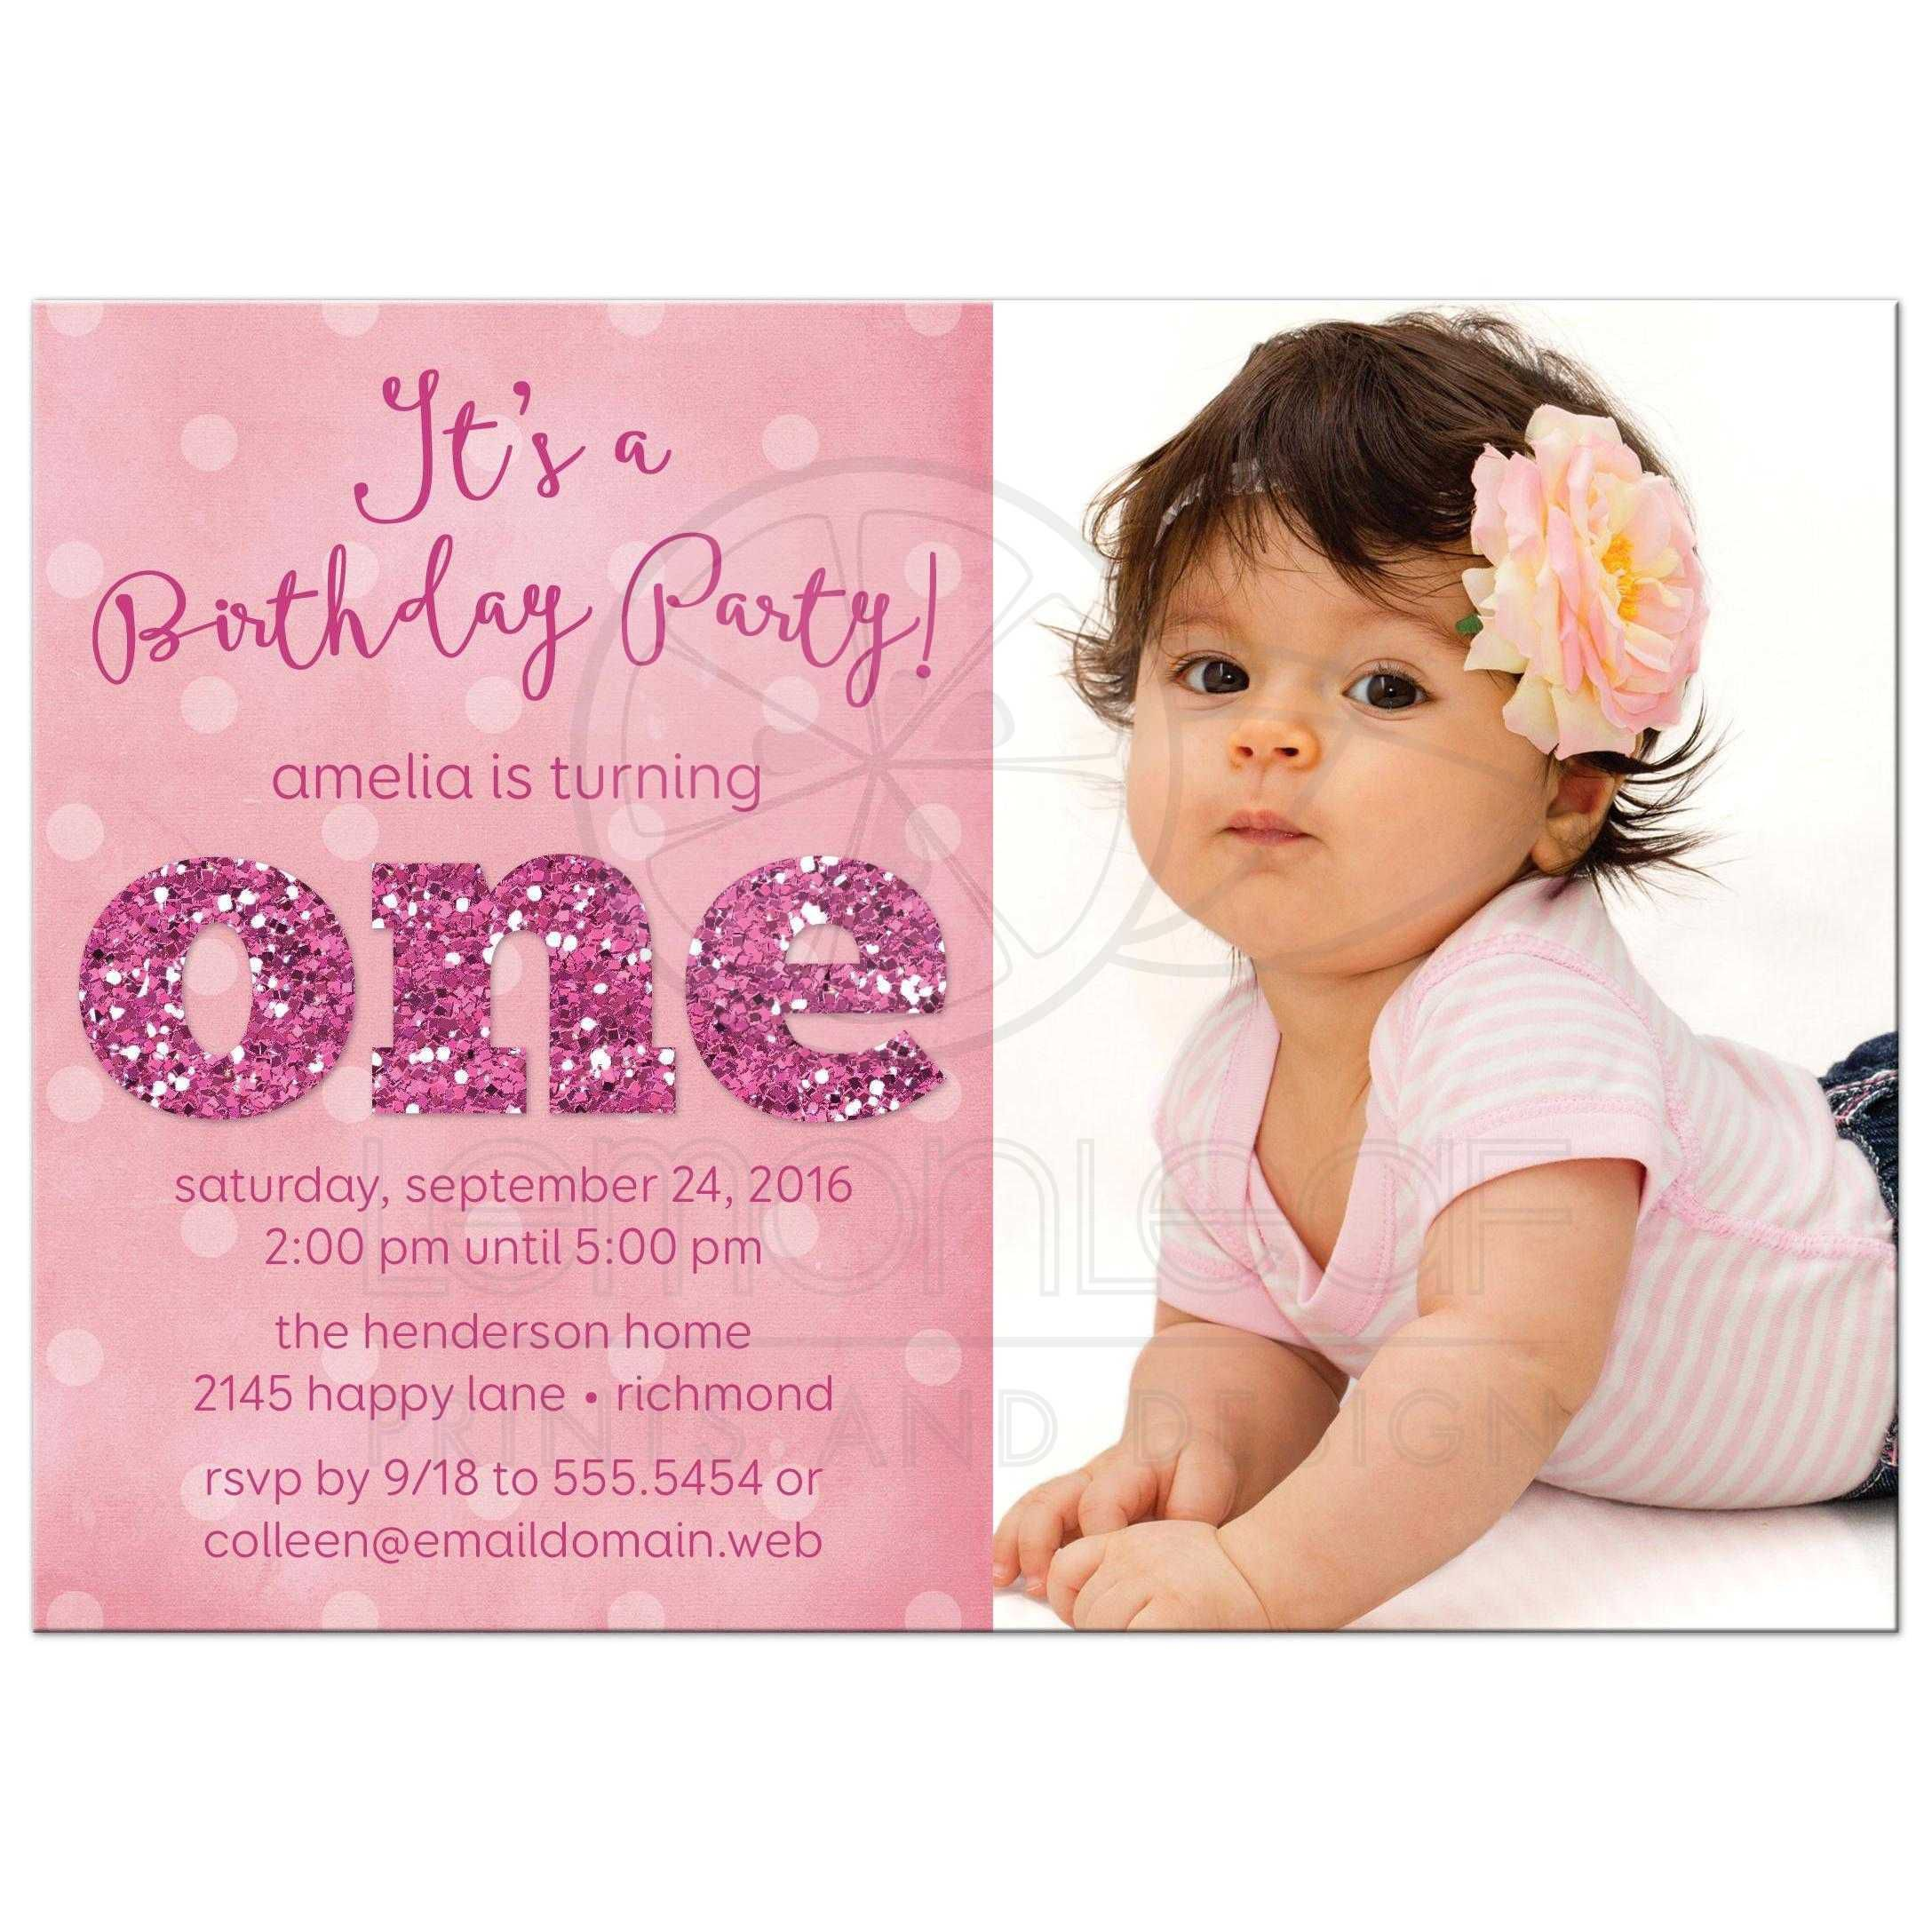 Stbirthdayandchristeninginvitationwording Baptism - Birthday invitation and christening